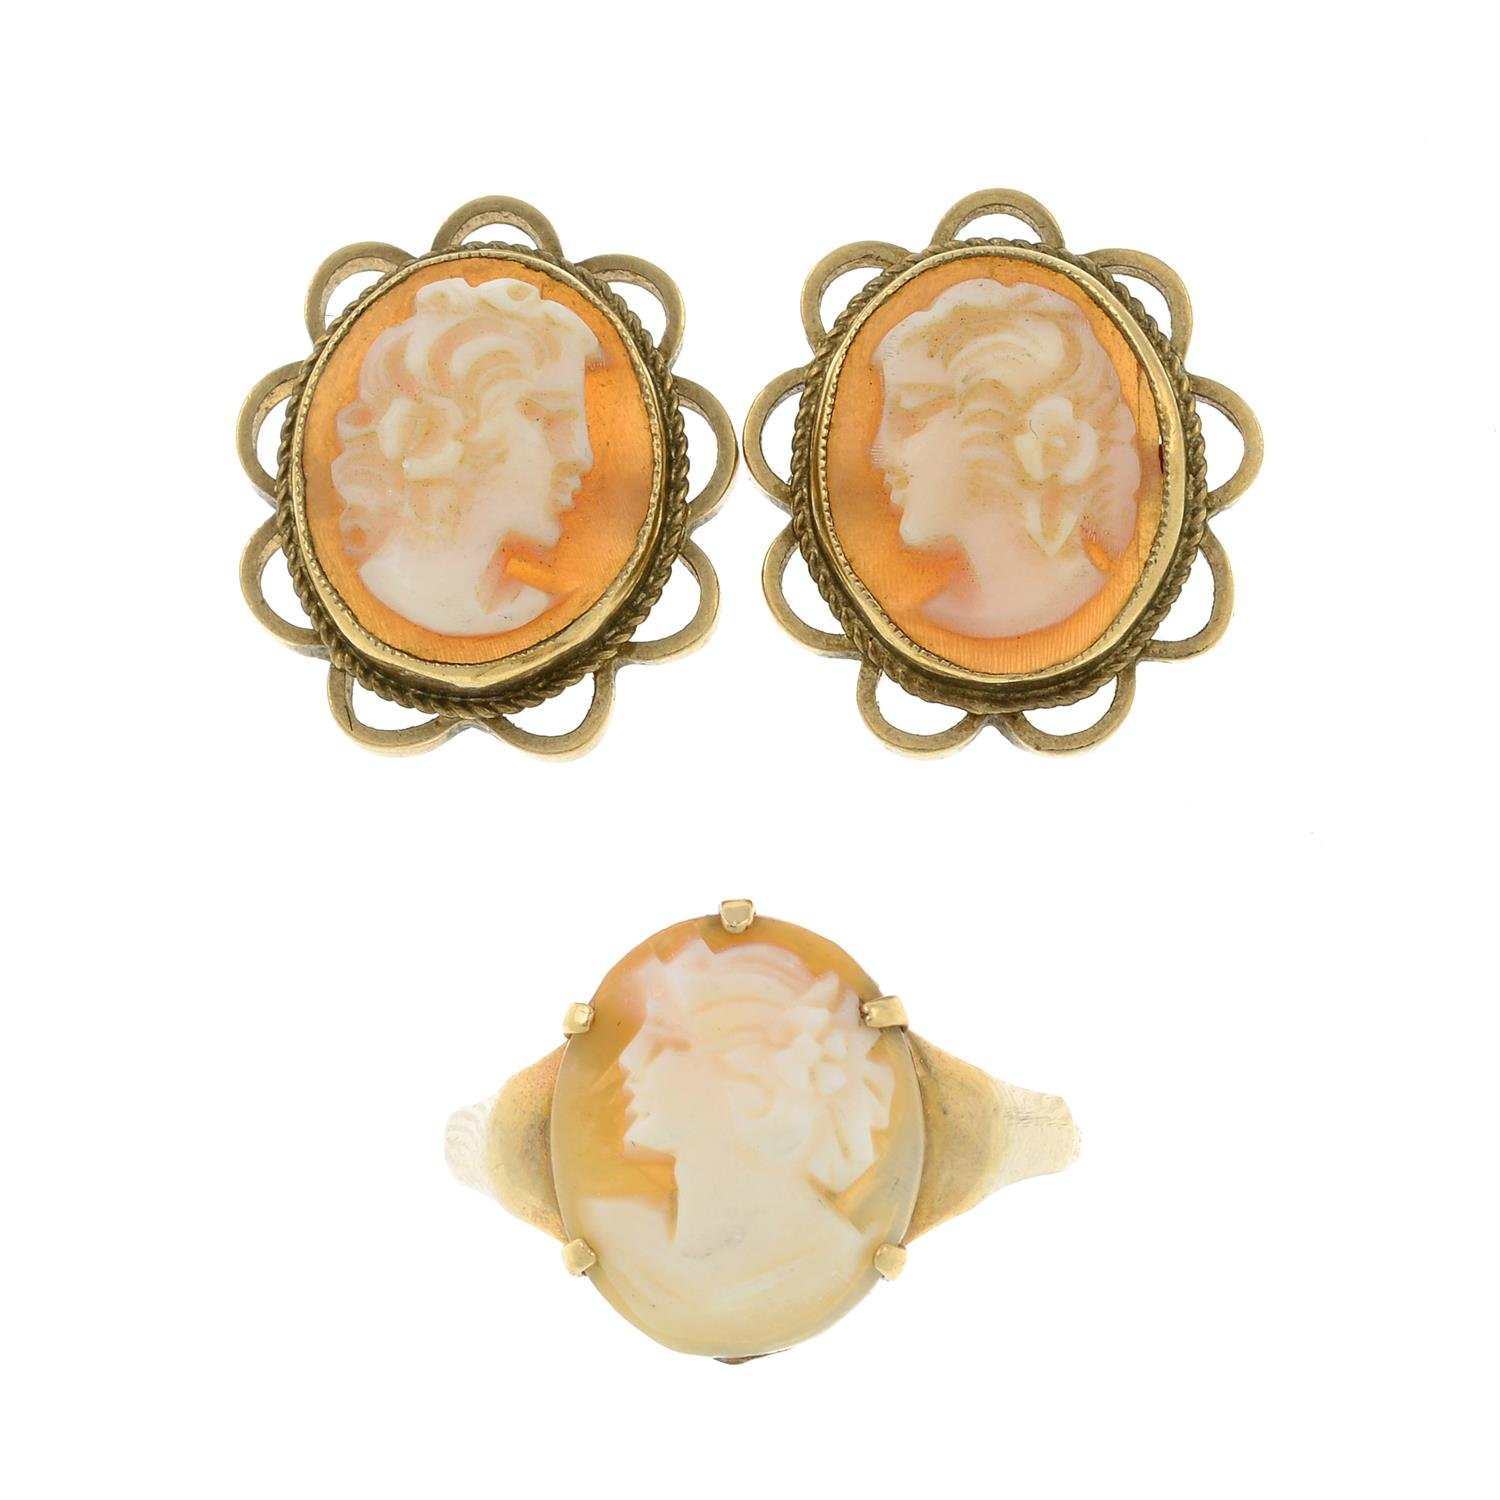 A 9ct gold shell cameo ring and stud earrings.